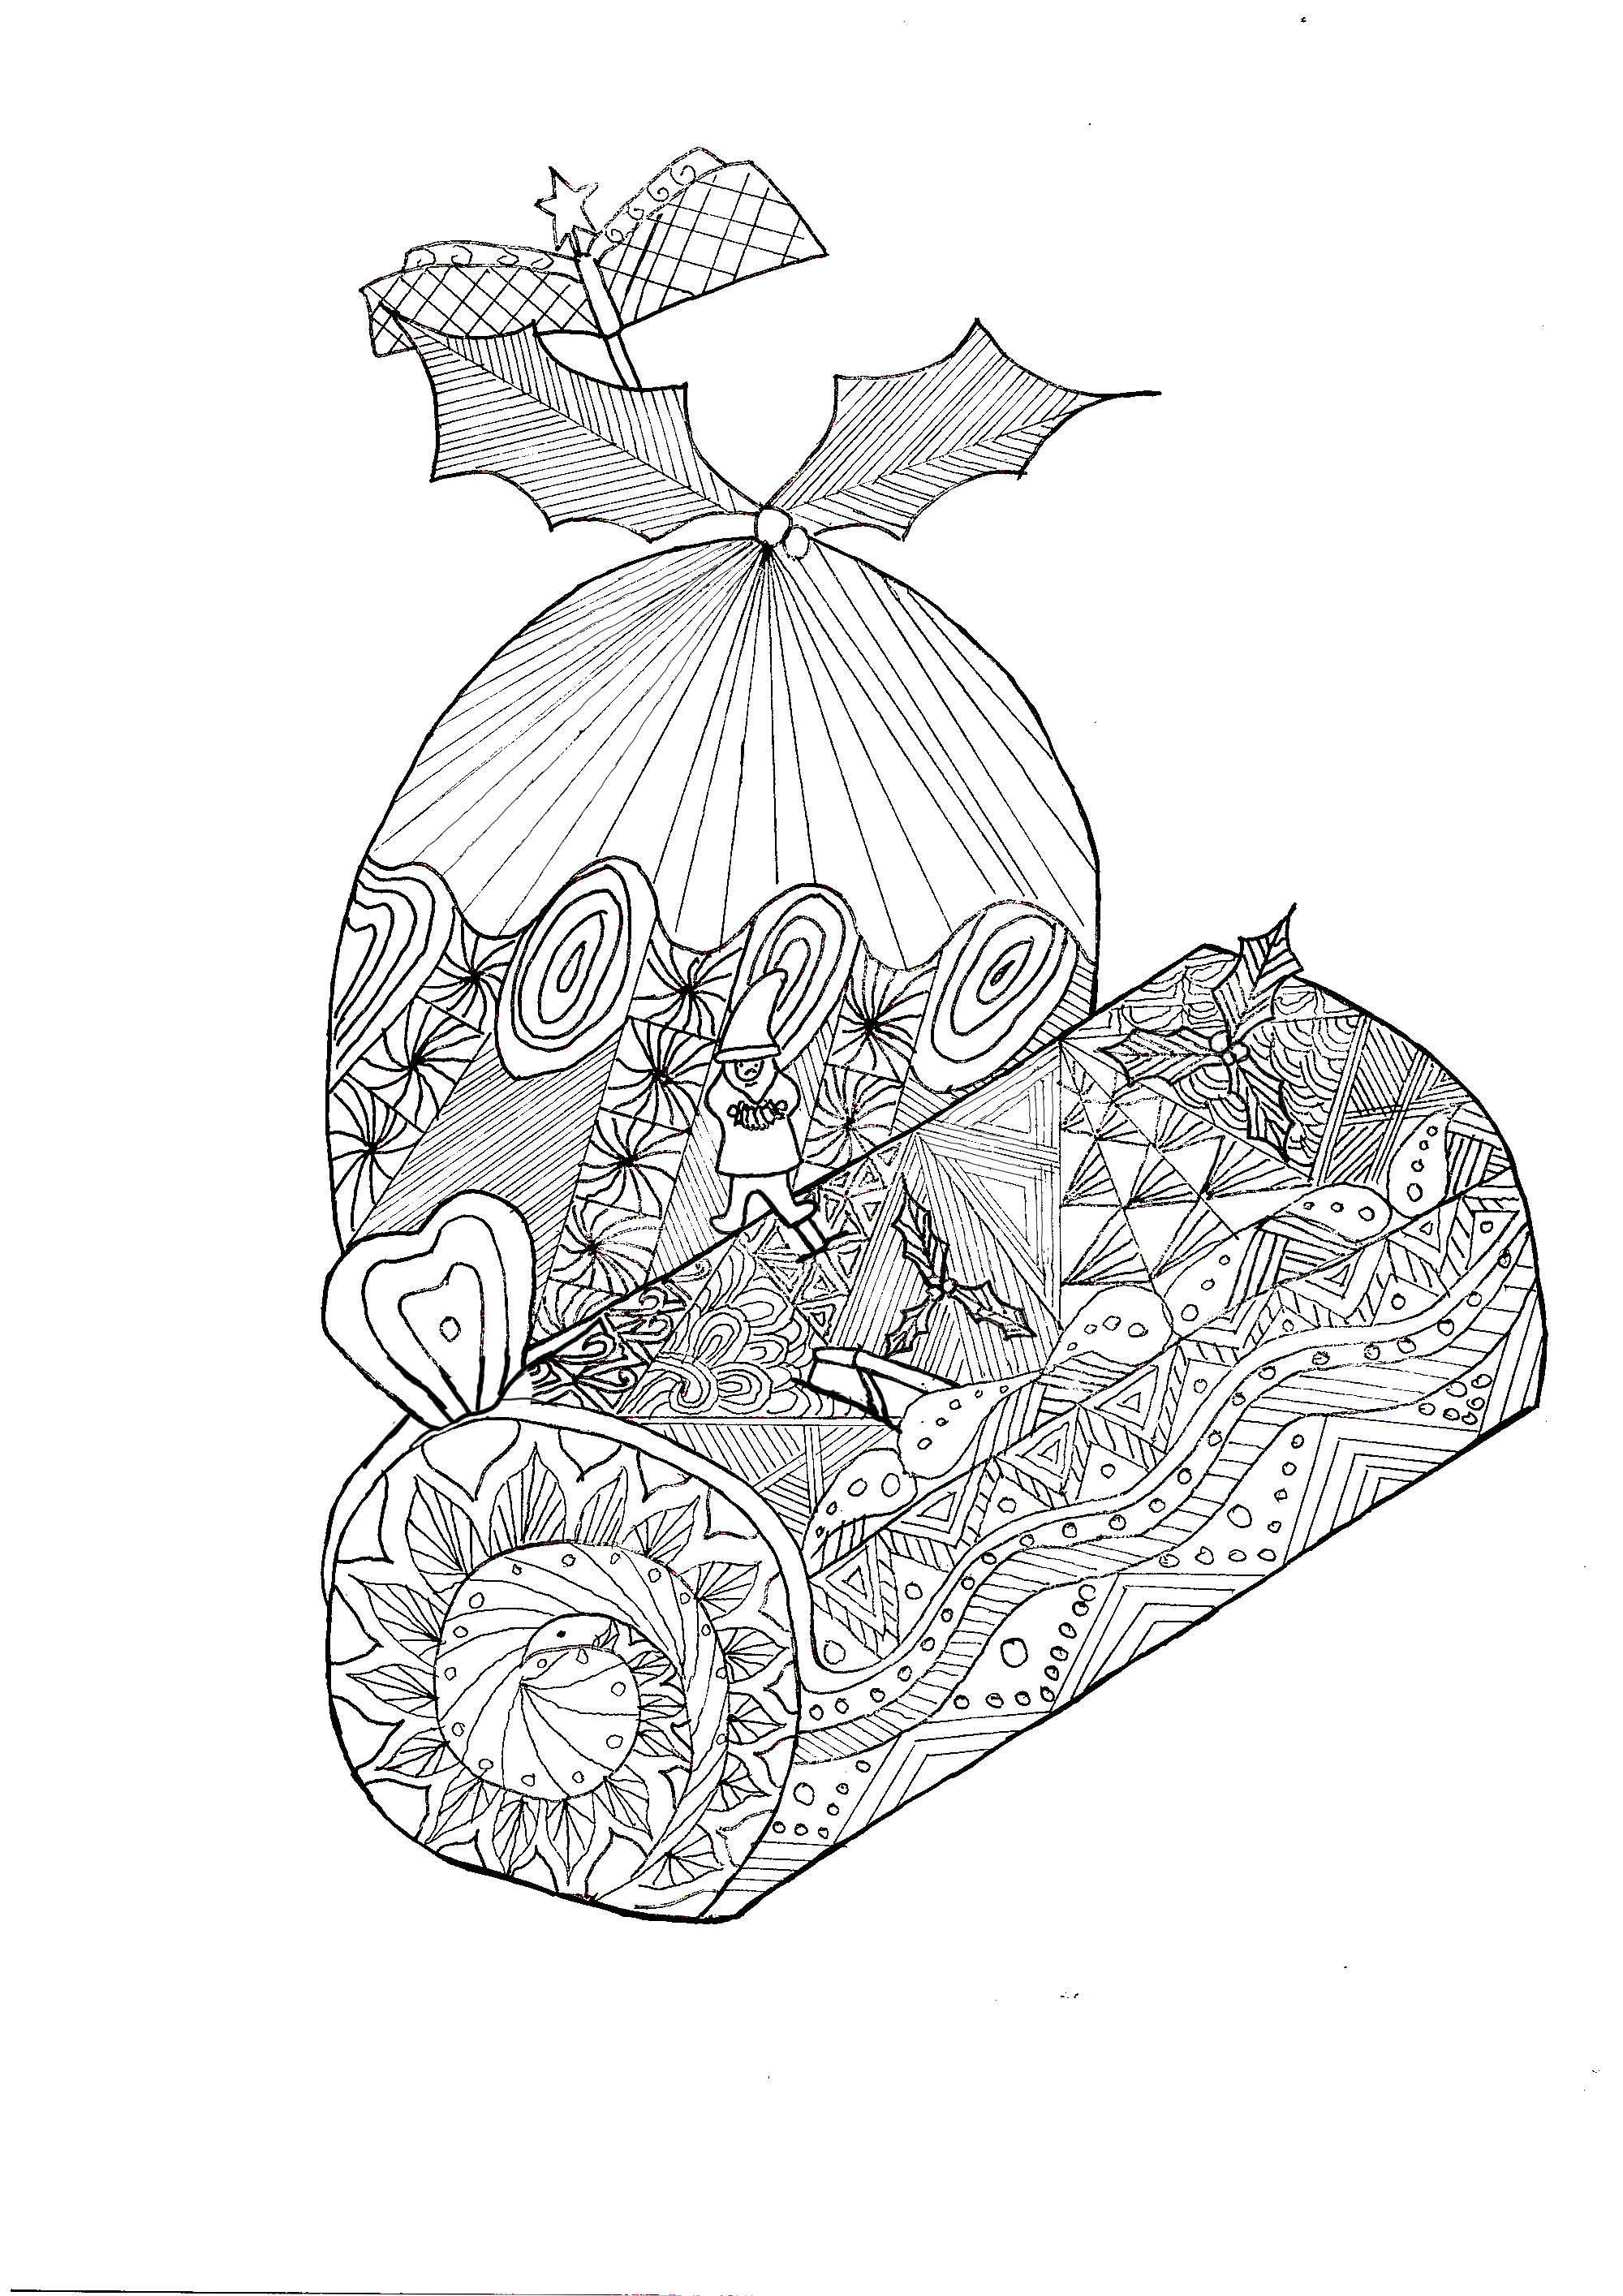 Complex Coloring Page Of A Christmas Log With Egg